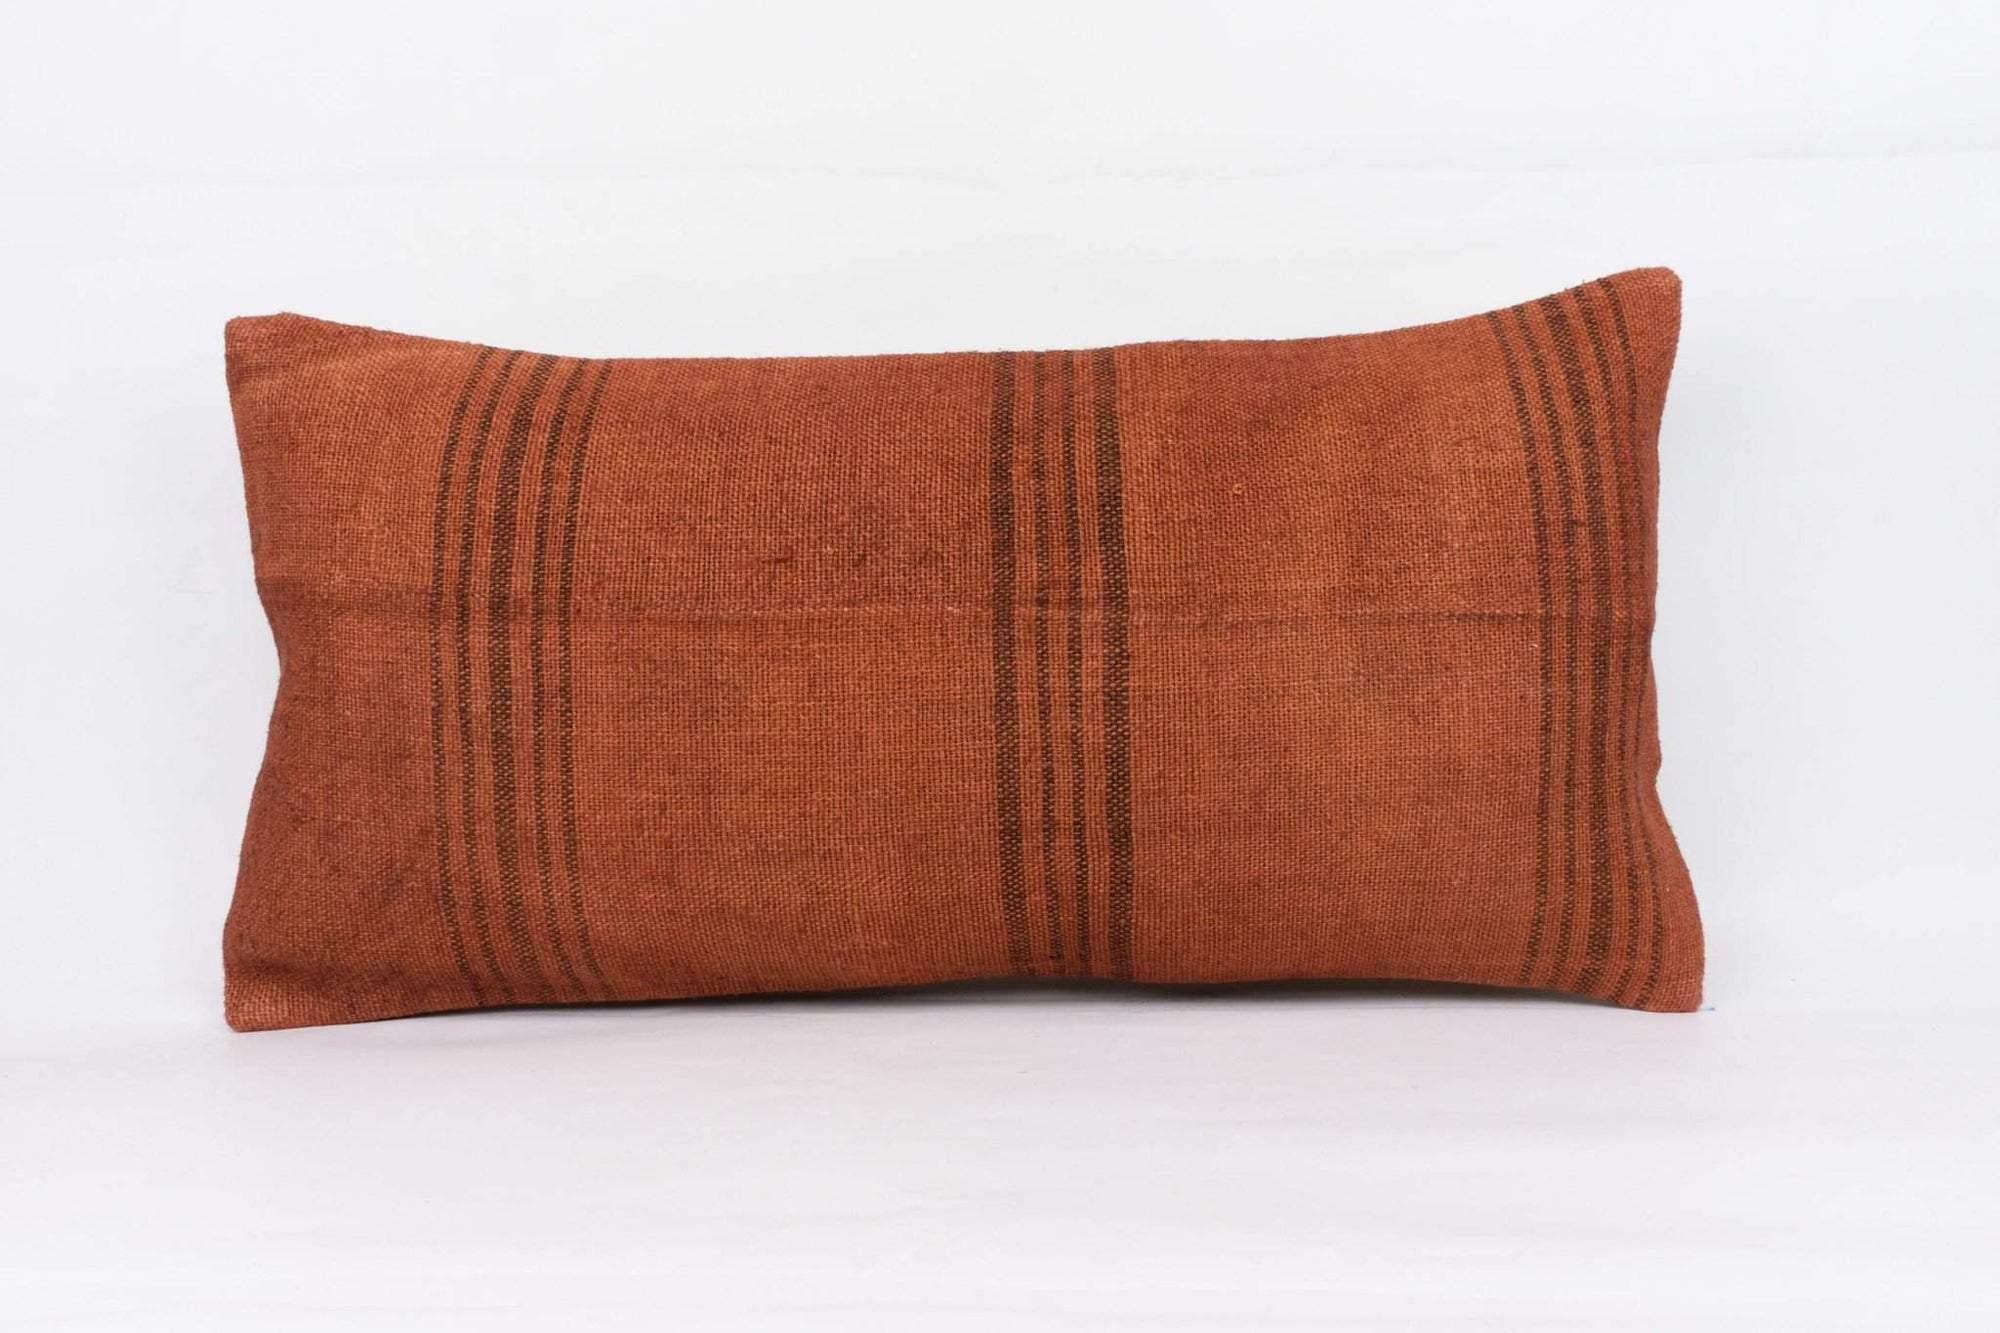 Plain Brown Kilim Pillow Cover 12x24 4186 - kilimpillowstore  - 1